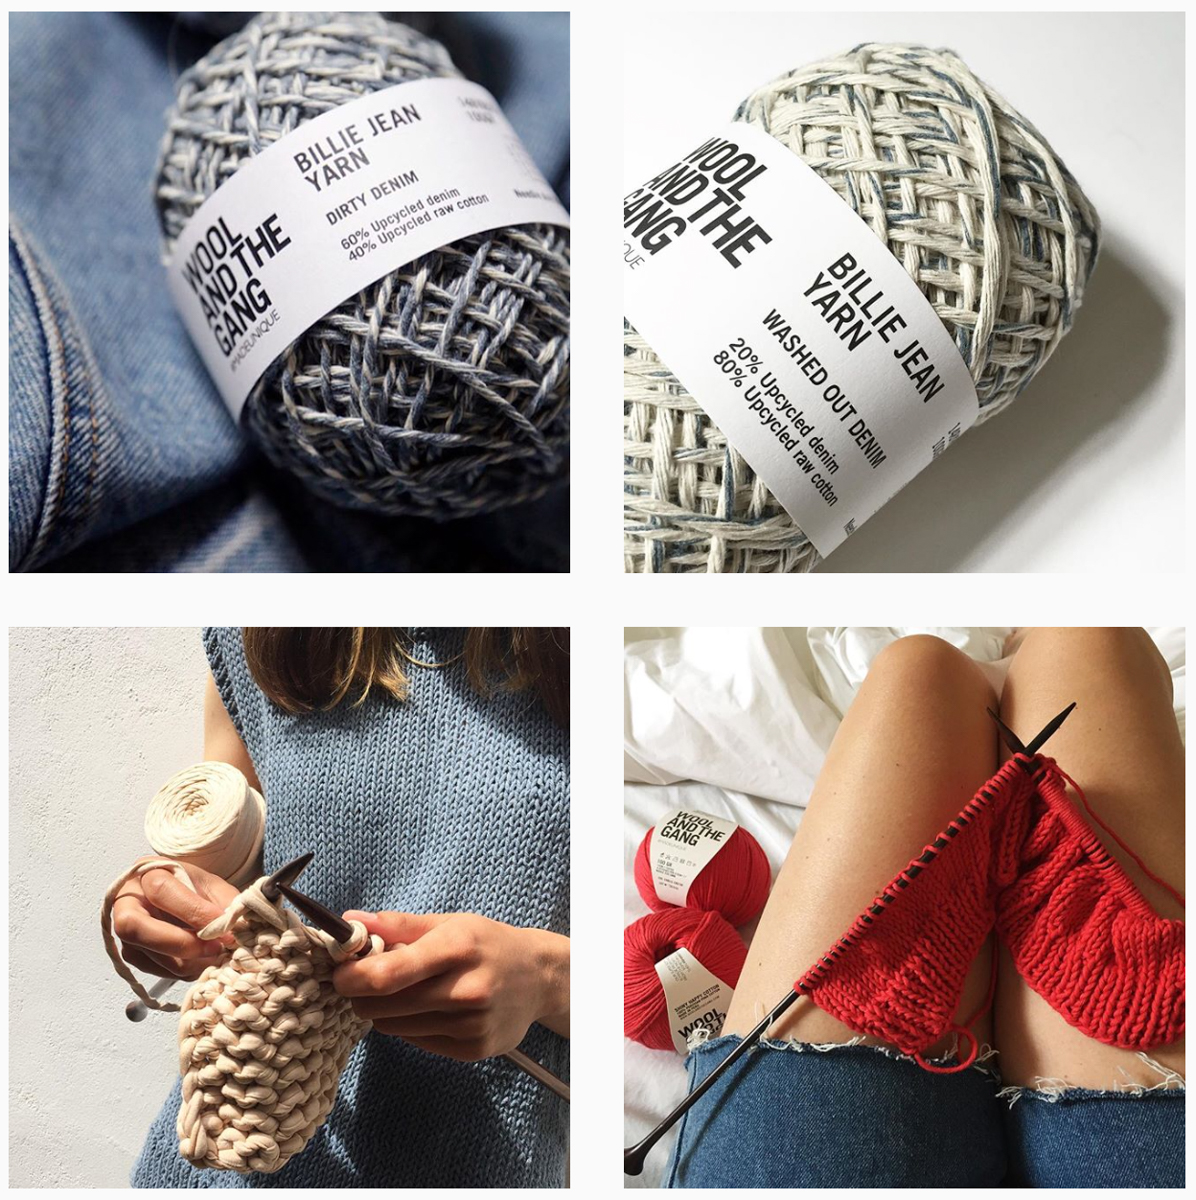 wool-and-the-gang-instagram-collage-scandinavia-standard-2